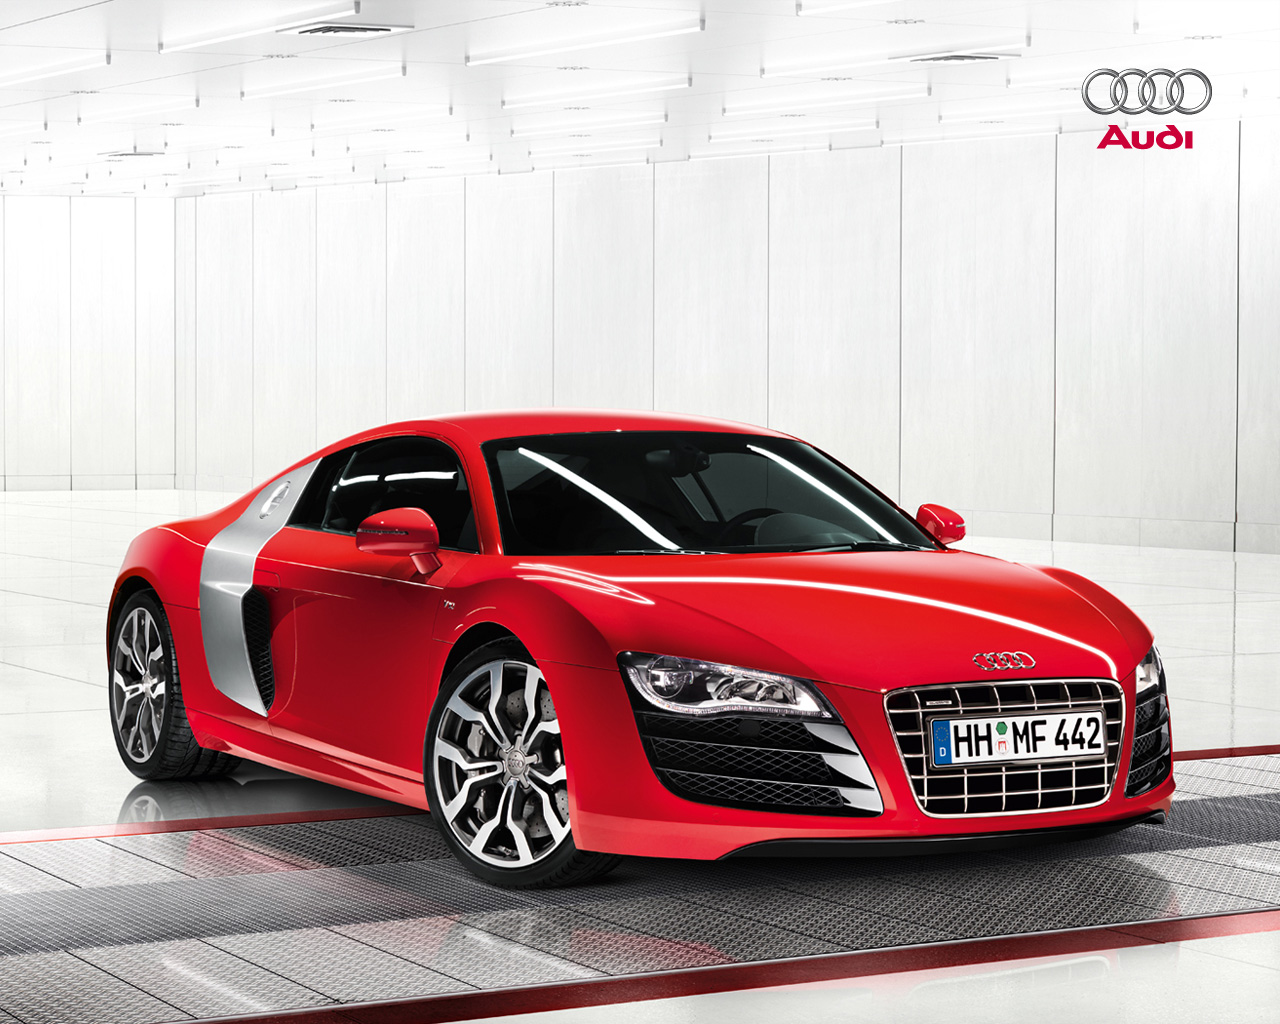 Wallpapers Audi R8 V10 52 FSI Automobile Box 1280x1024